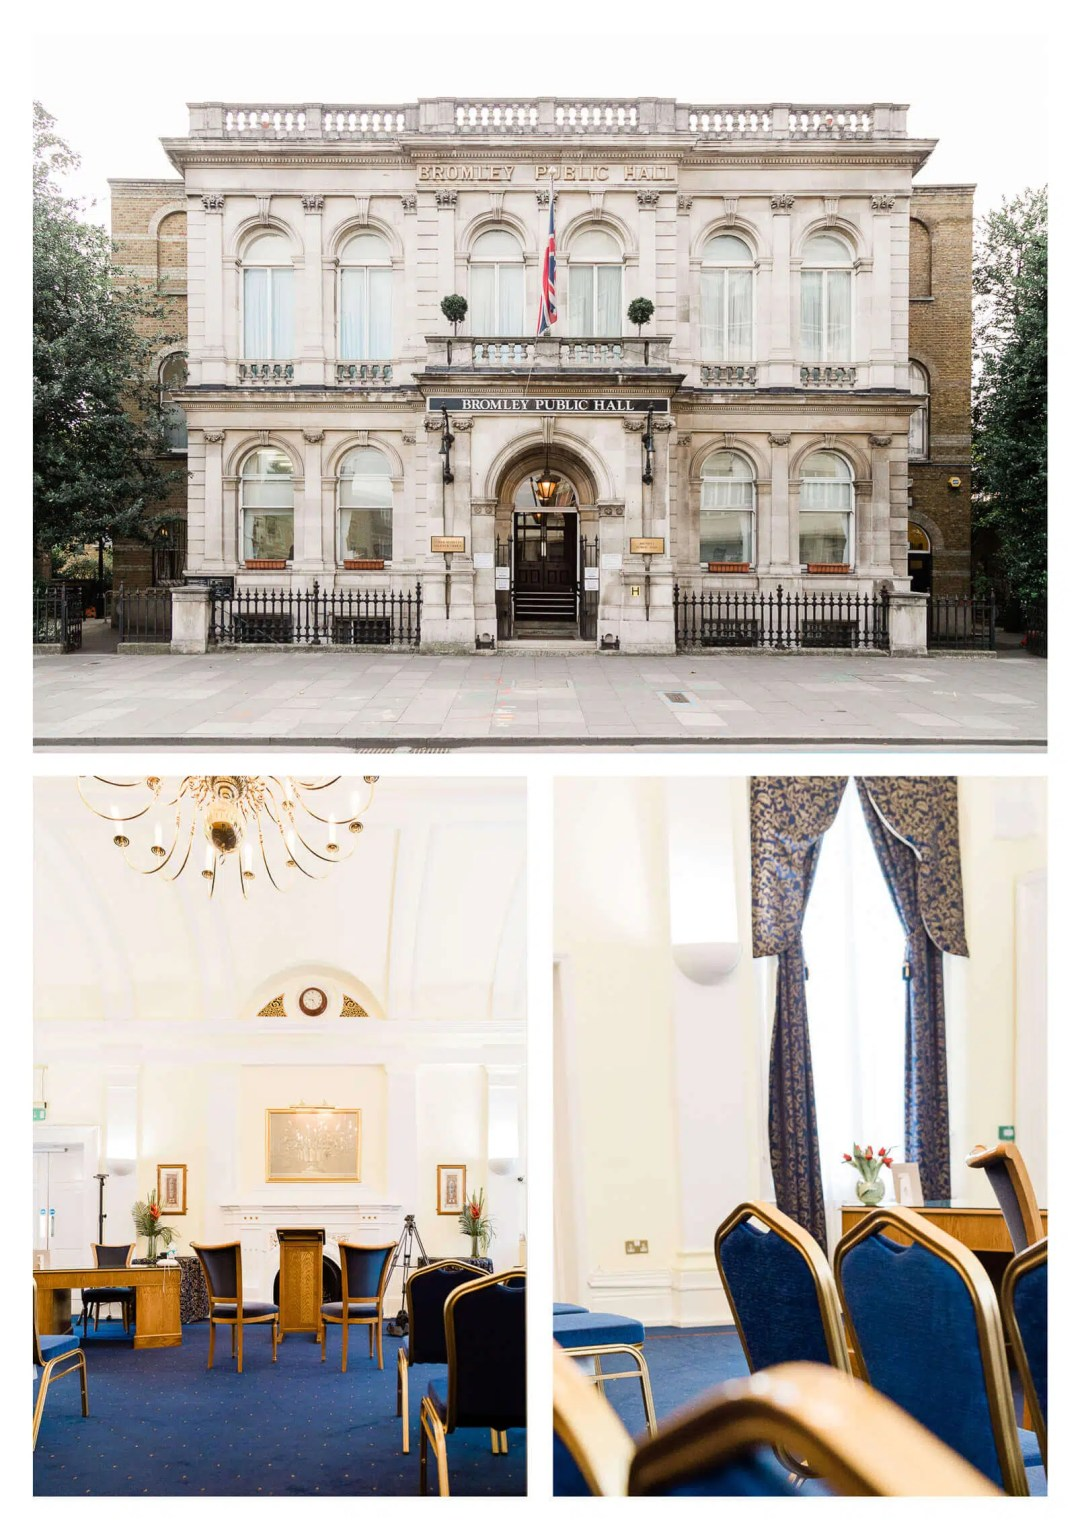 Bromley Public Hall Registry Ceremony | London wedding photographer